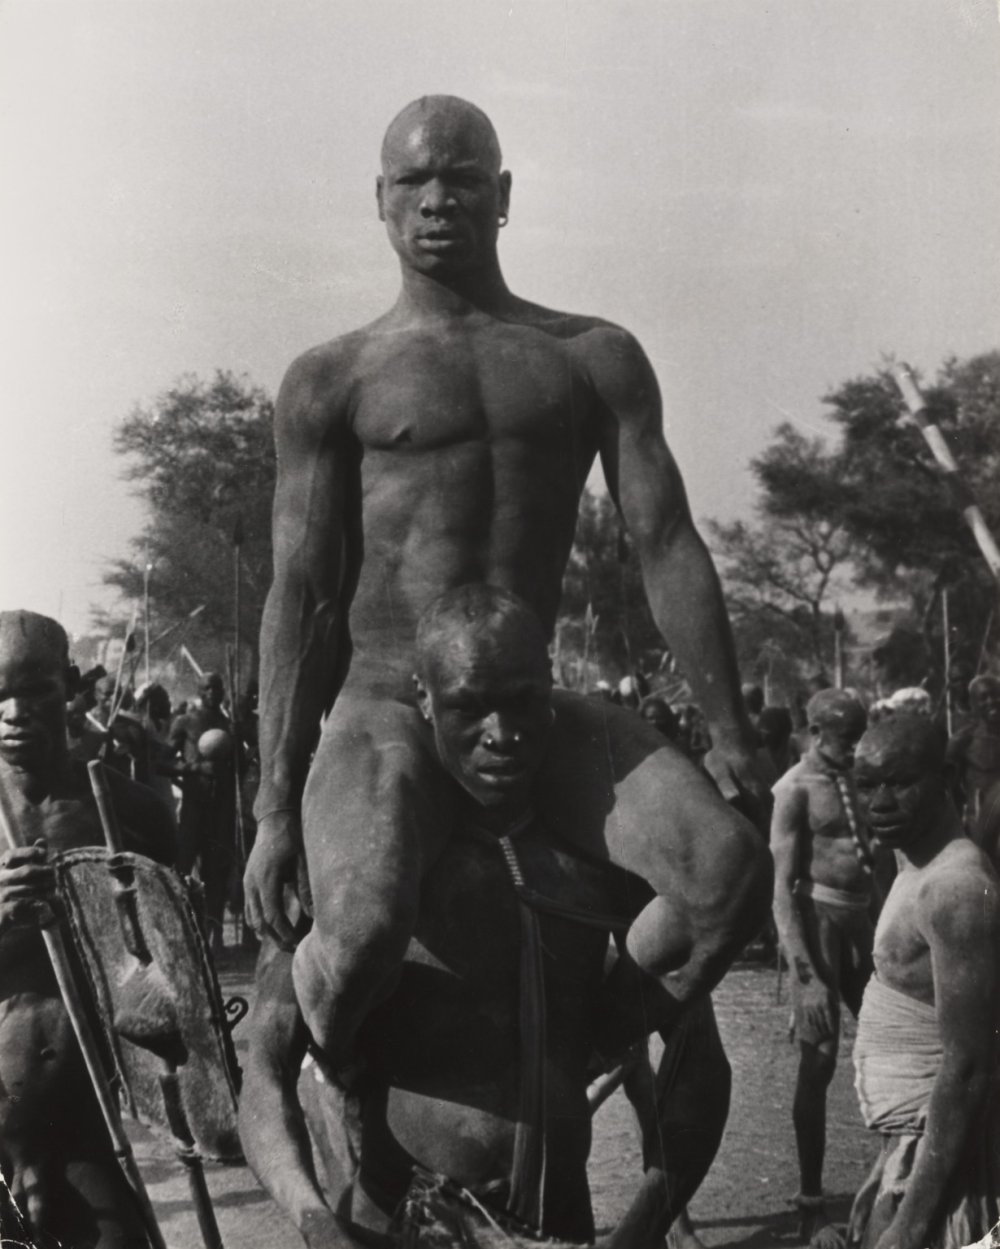 The Wrestlers, Kordofan, Sudan, 1949, by George Rodger